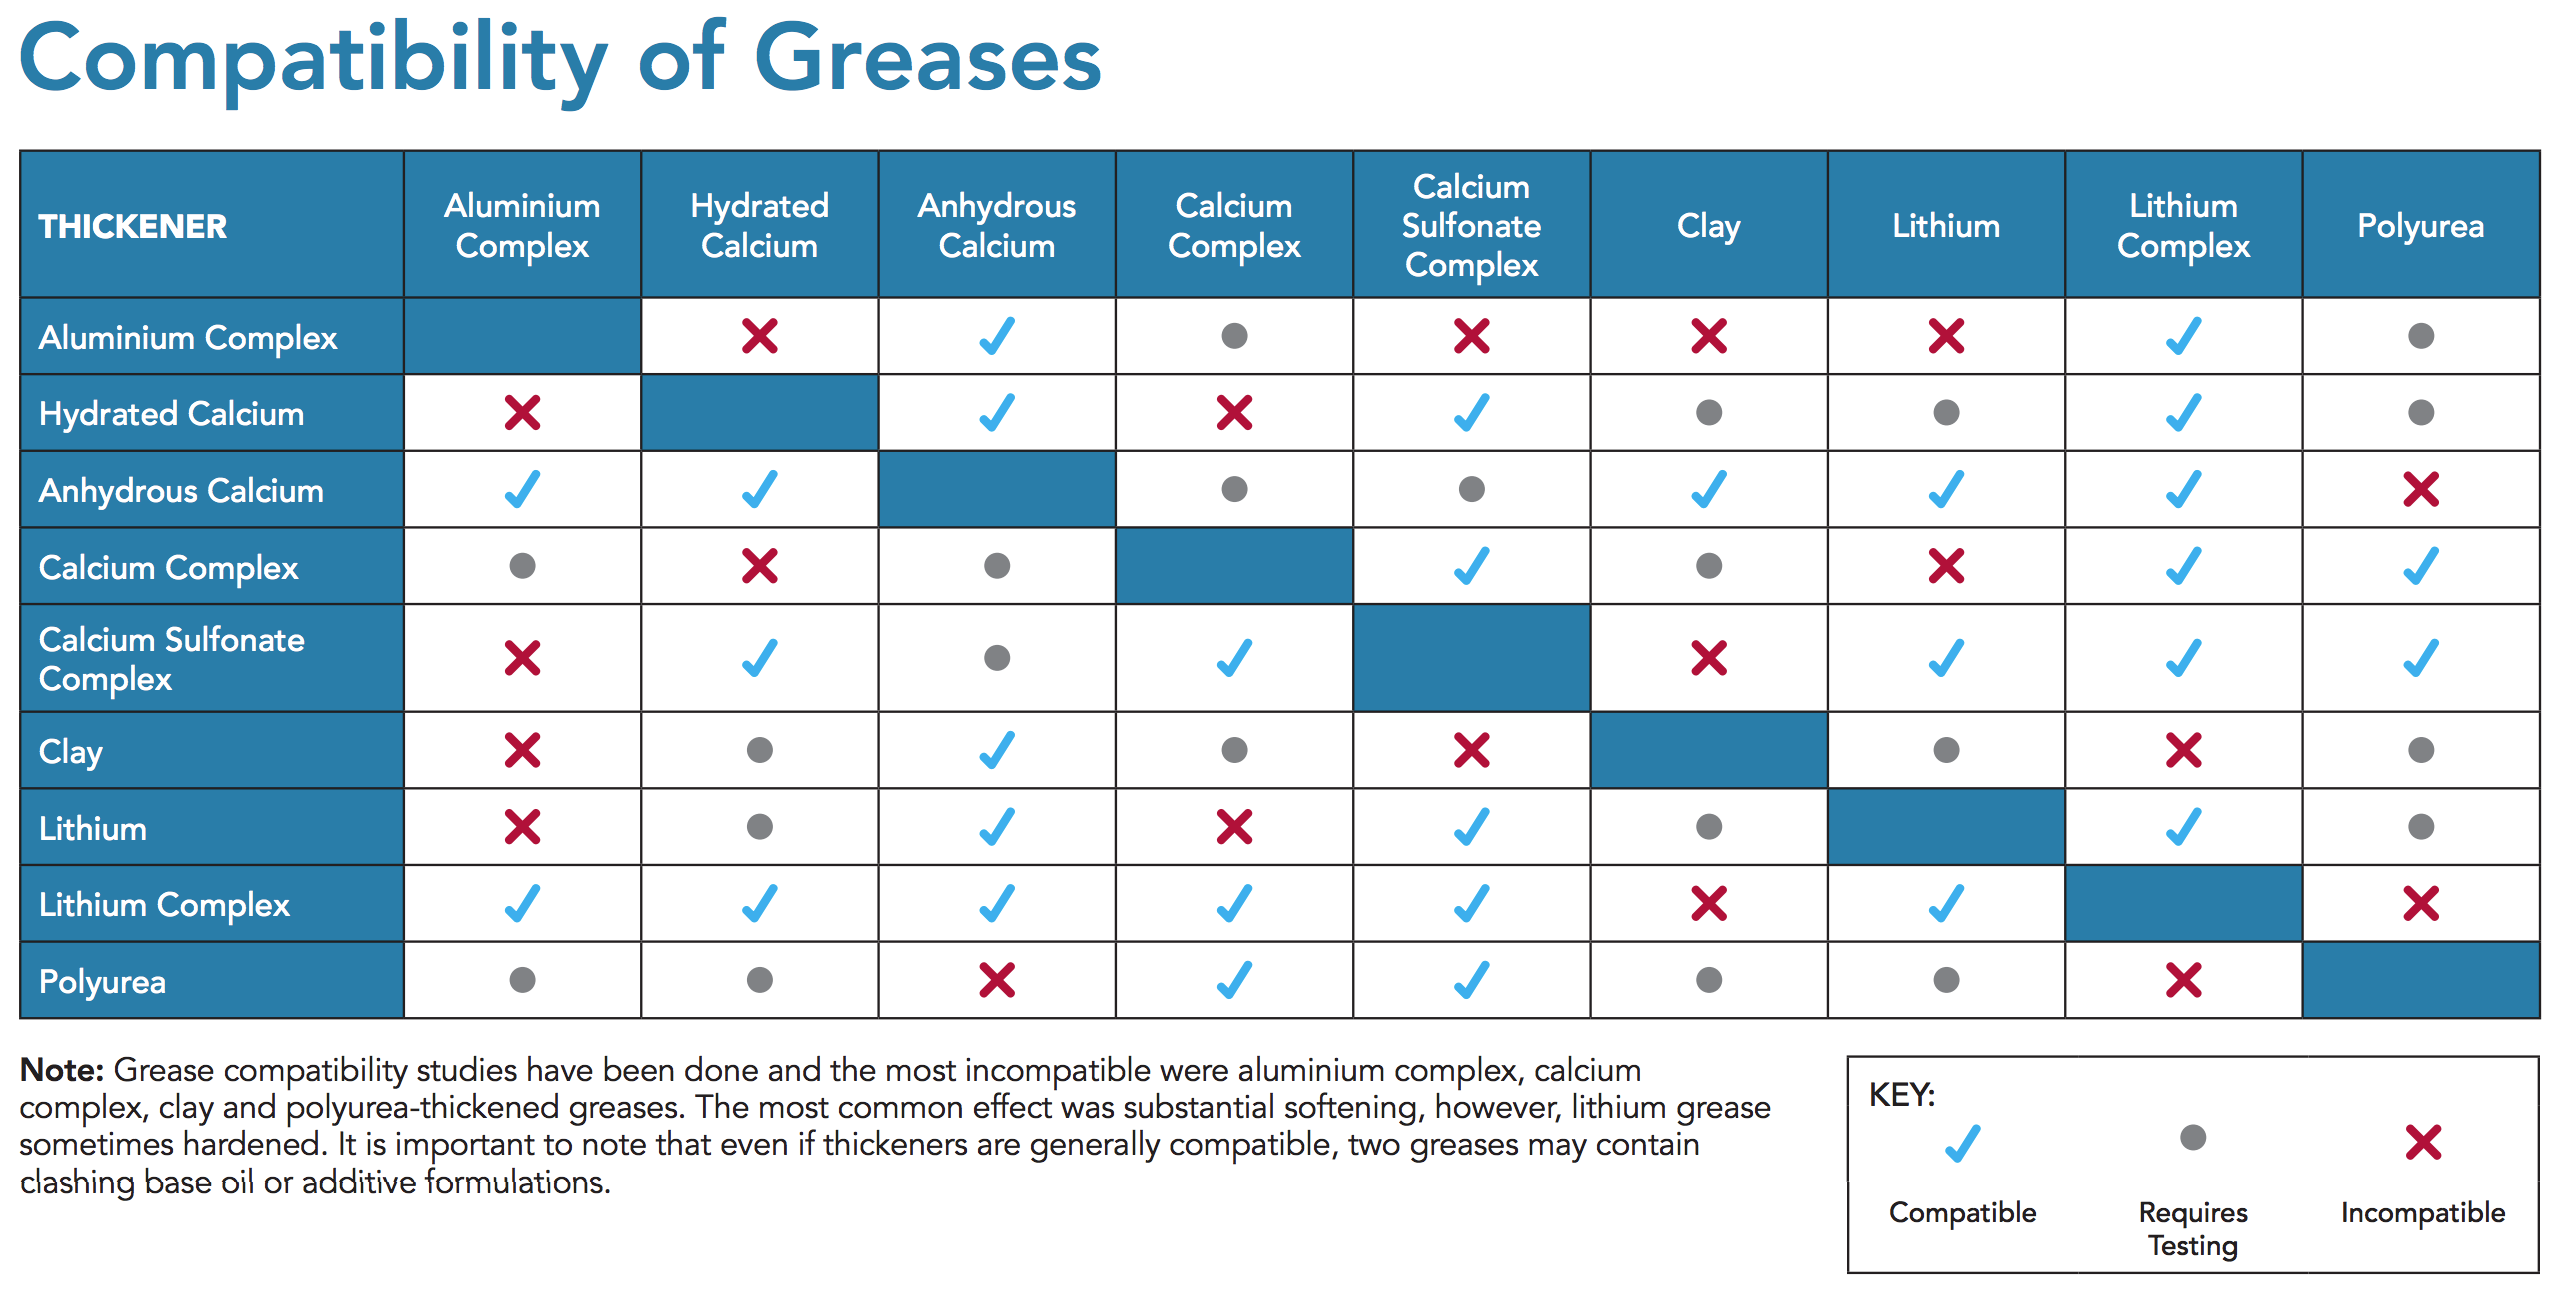 Compatibility of Greases chart